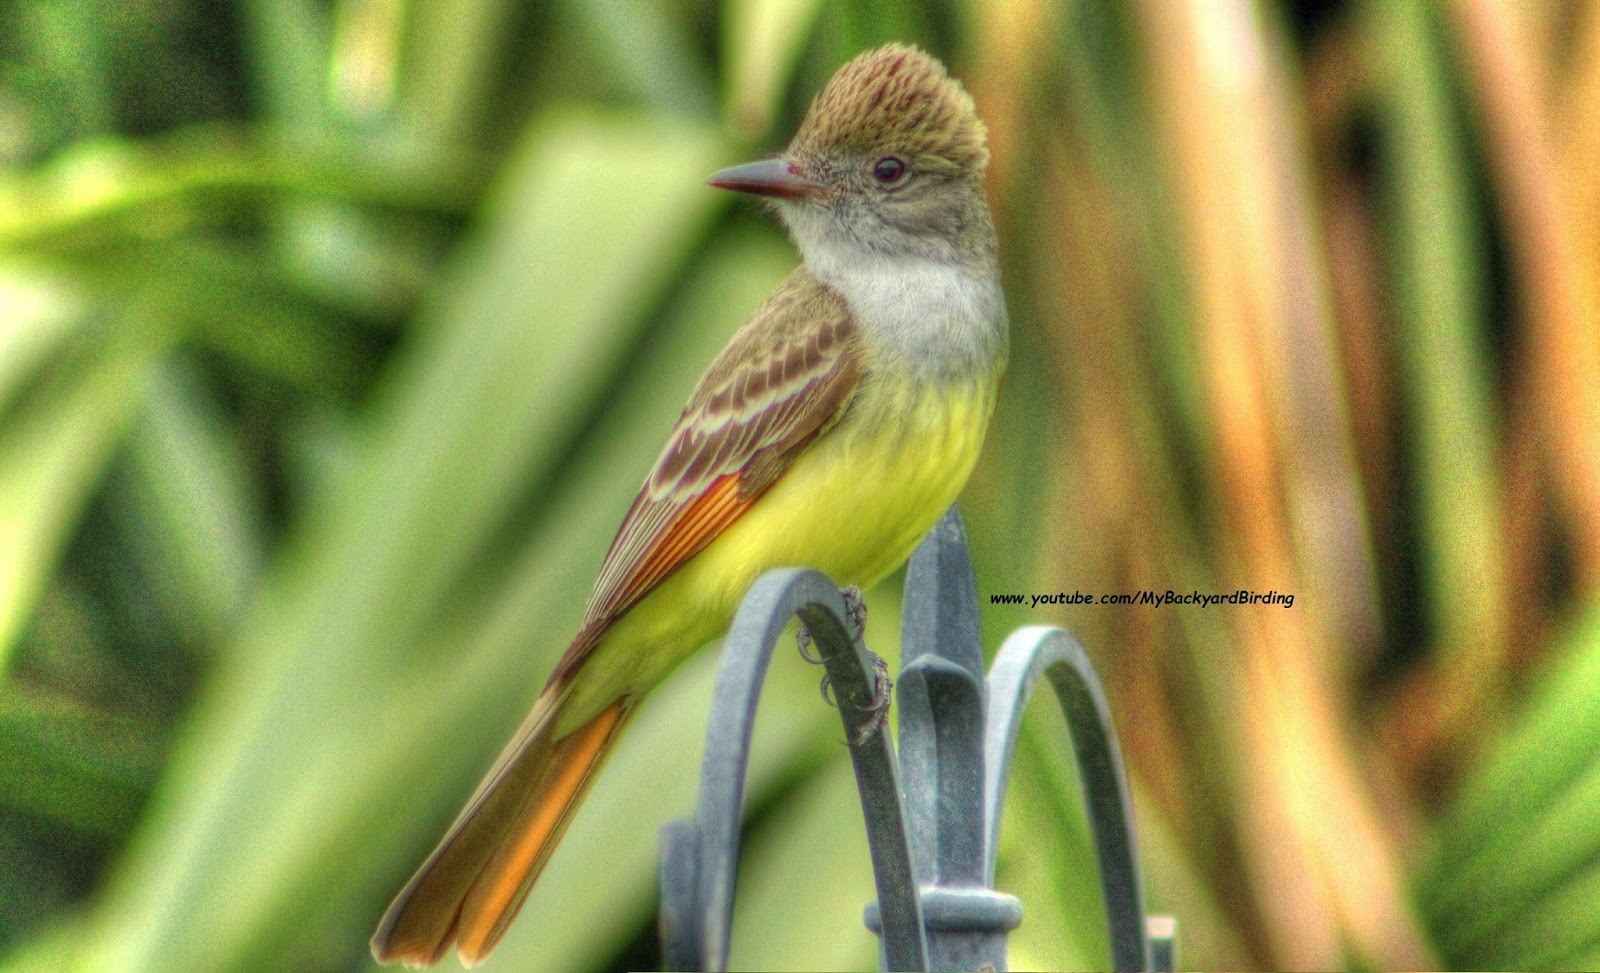 male Great Crested Flycatcher Calling